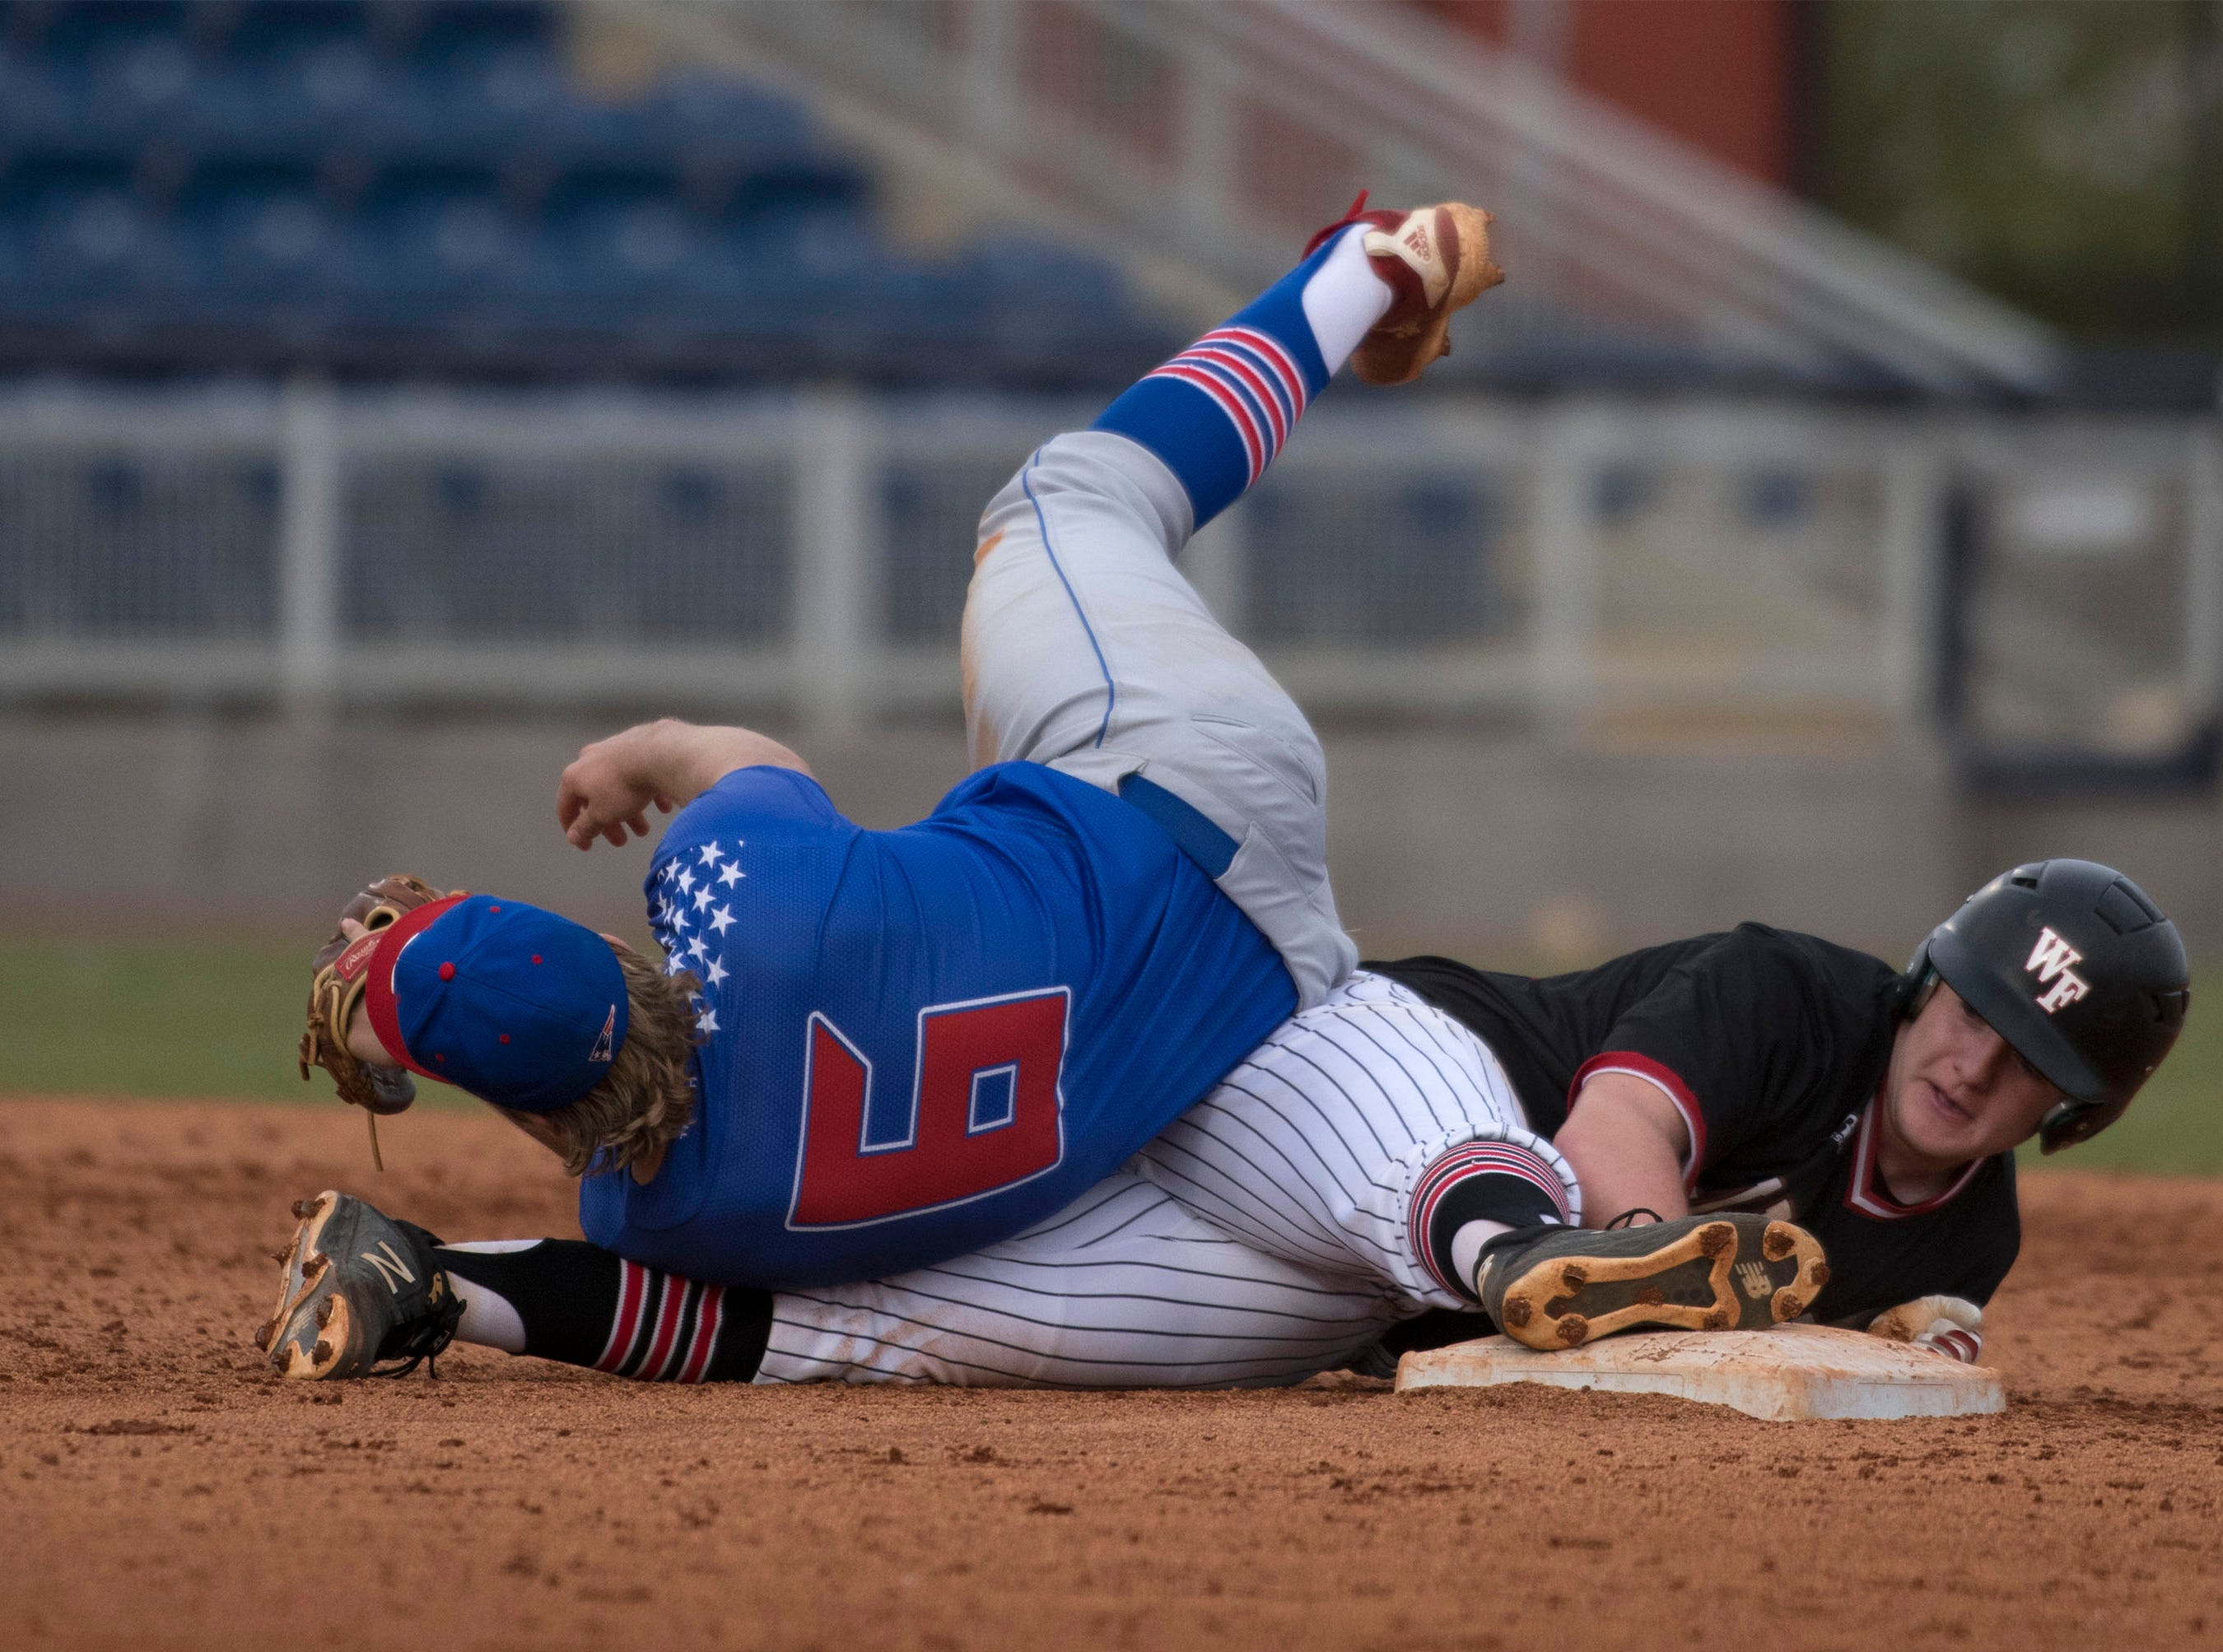 West Florida High School's Will Hackett,(No. 11) gets buried by Pace High School's Aidan Gilroy, (No. 6) after he fails to make a leaping catch during the Battle of the Bay tournament at Blue Wahoos stadium on Tuesday, March 12, 2019.